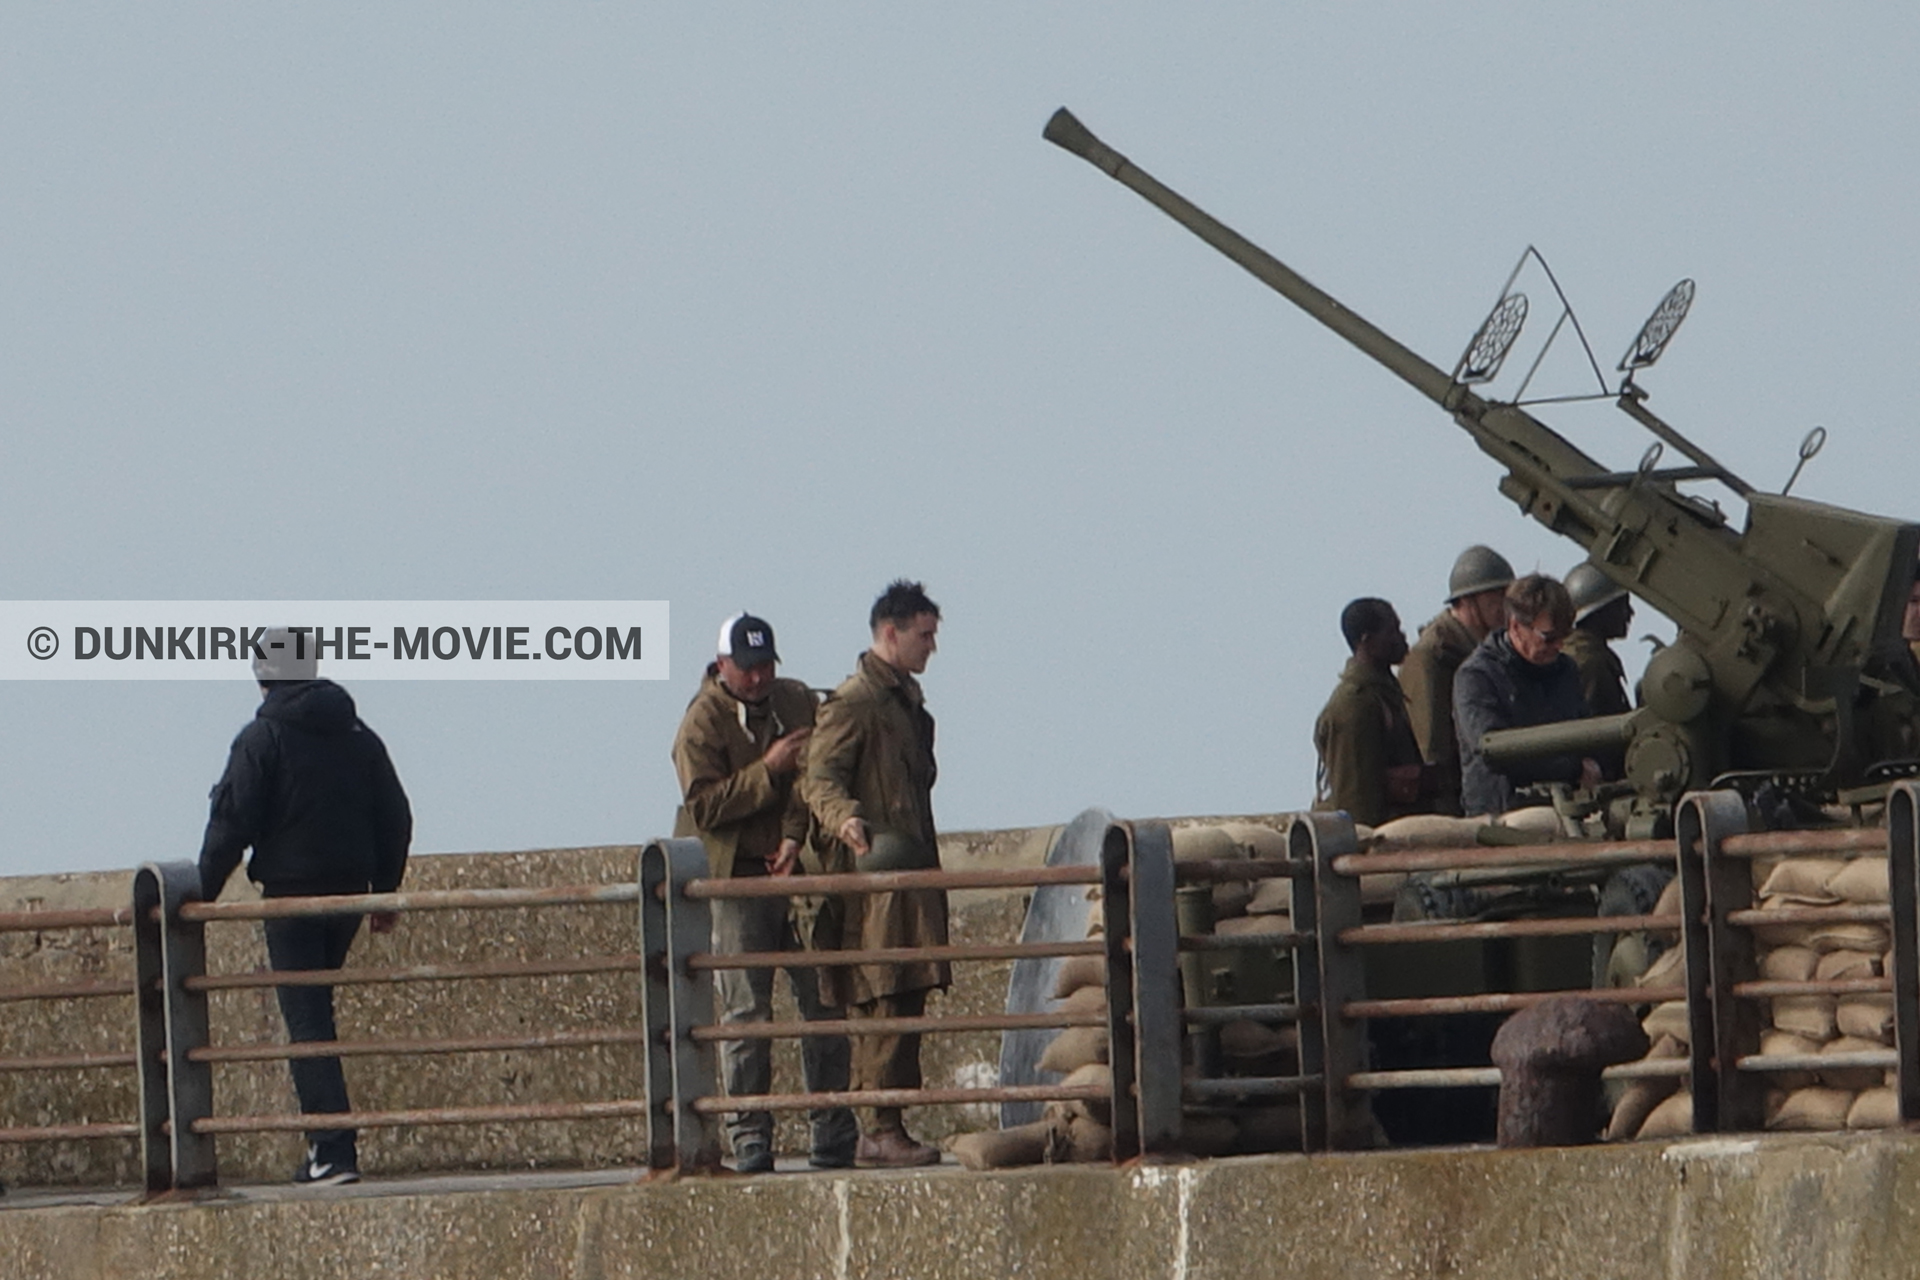 Picture with cannon, supernumeraries, EST pier,  from behind the scene of the Dunkirk movie by Nolan